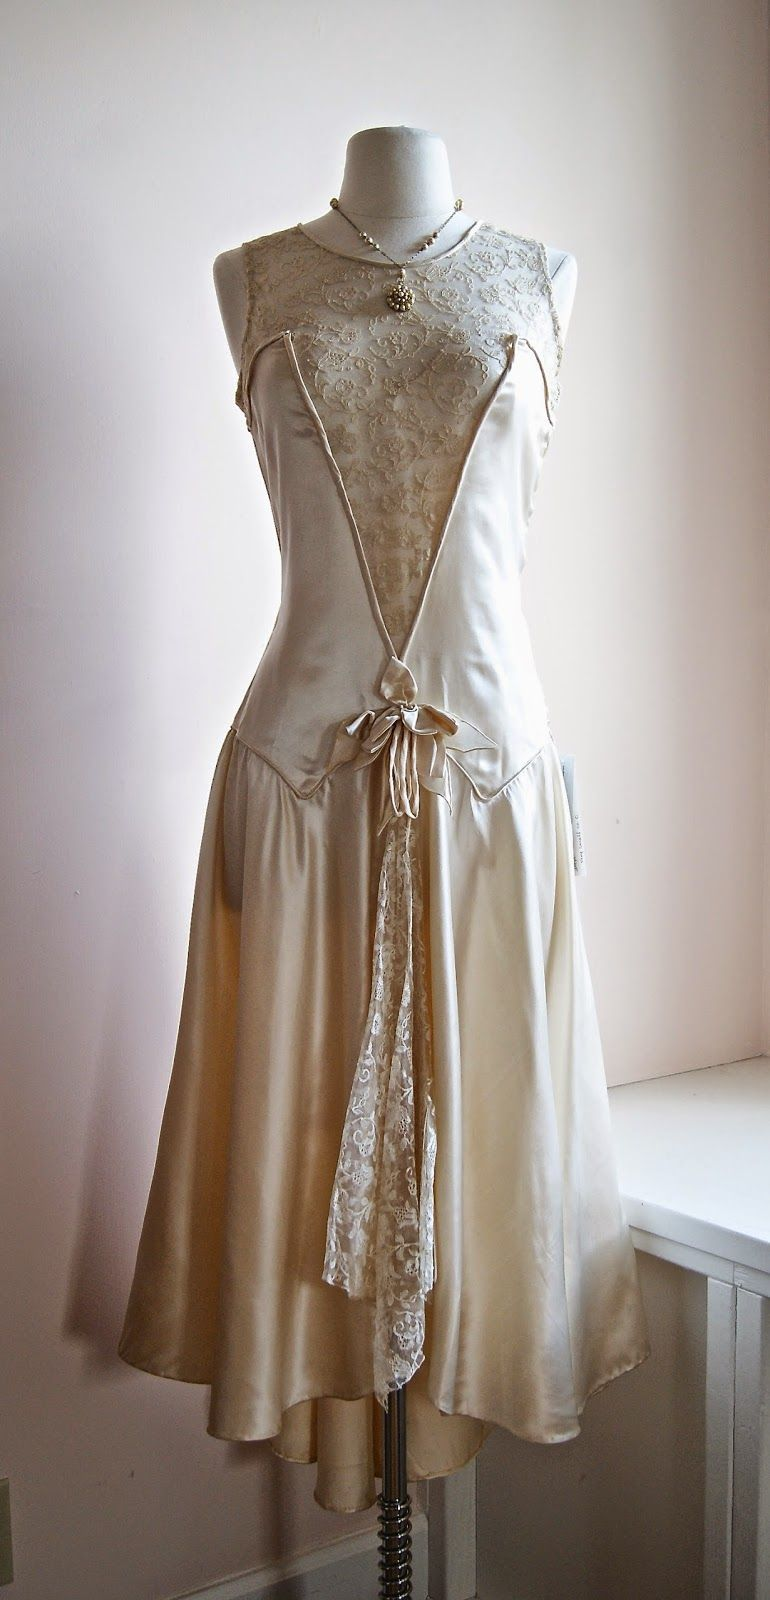 1920's wedding dress at Xtabay Vintage Clothing Boutique ...